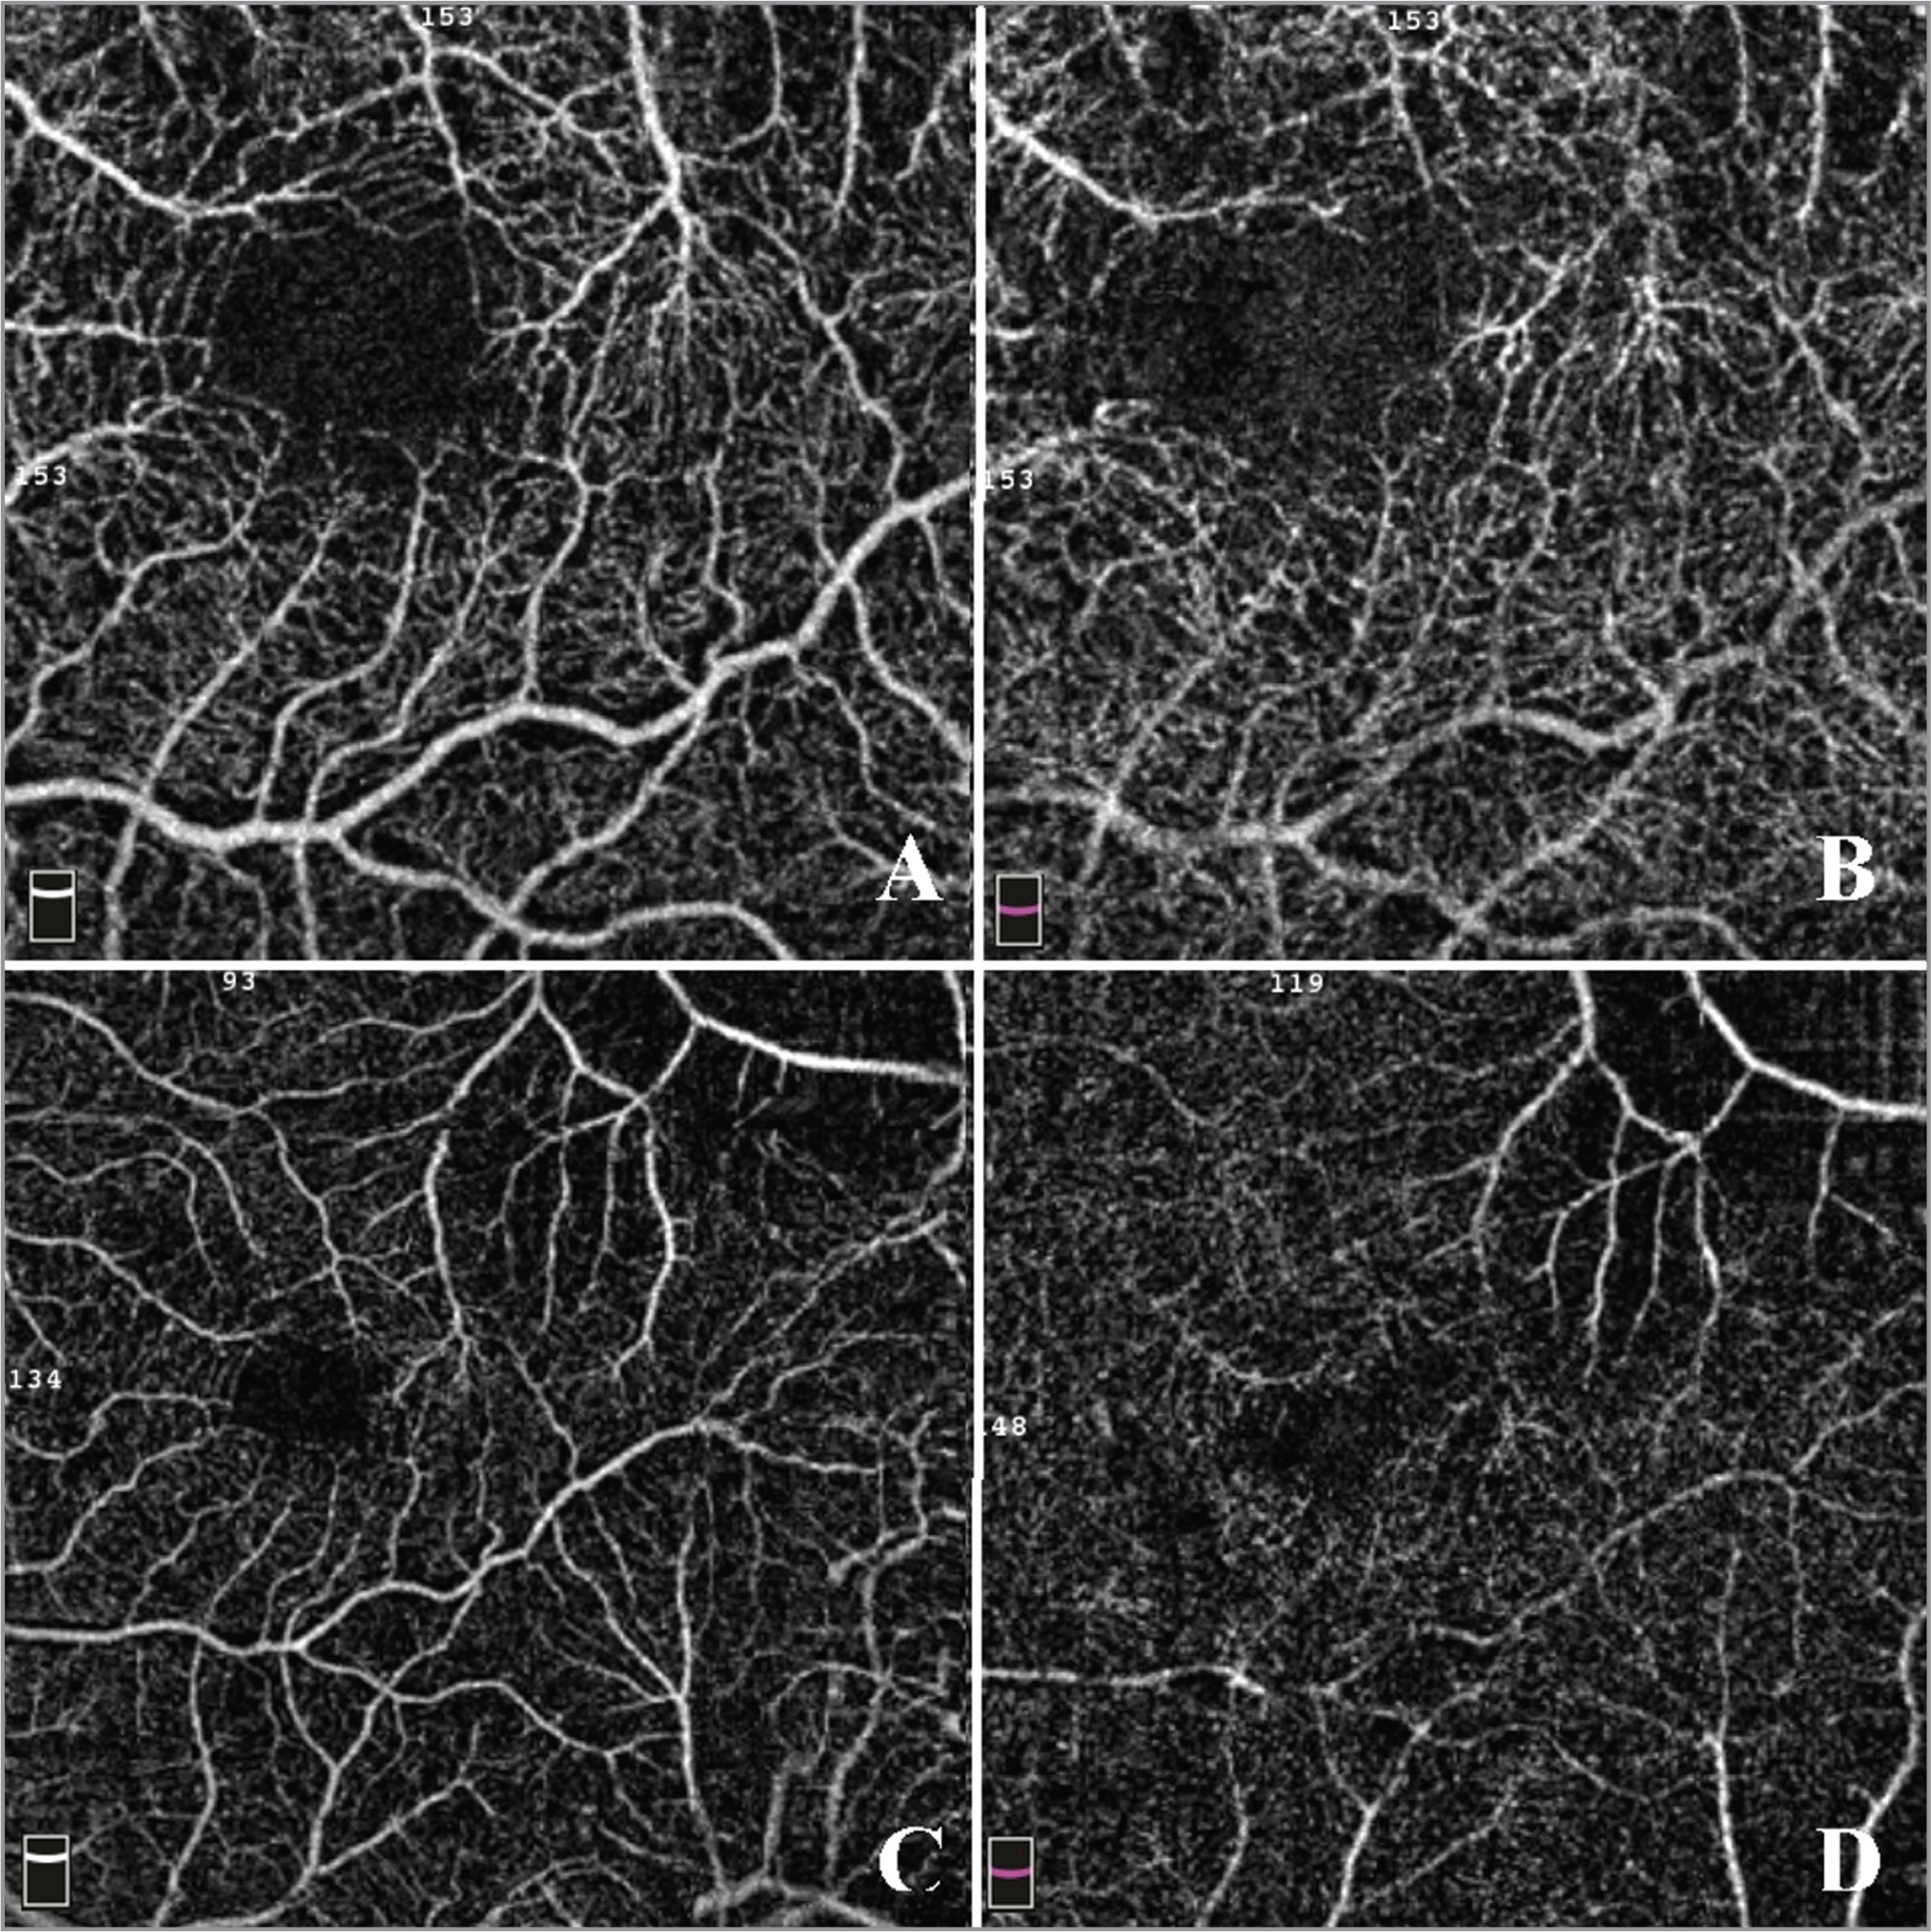 En face optical coherence tomography example of a patient with exudative age-related macular degeneration with no vascular abnormalities. (A) 3 × 3 superficial capillaries area. (B) 3 × 3 deep capillaries area. (C) 6 × 6 superficial capillaries area. (D) 6 × 6 deep capillaries area.